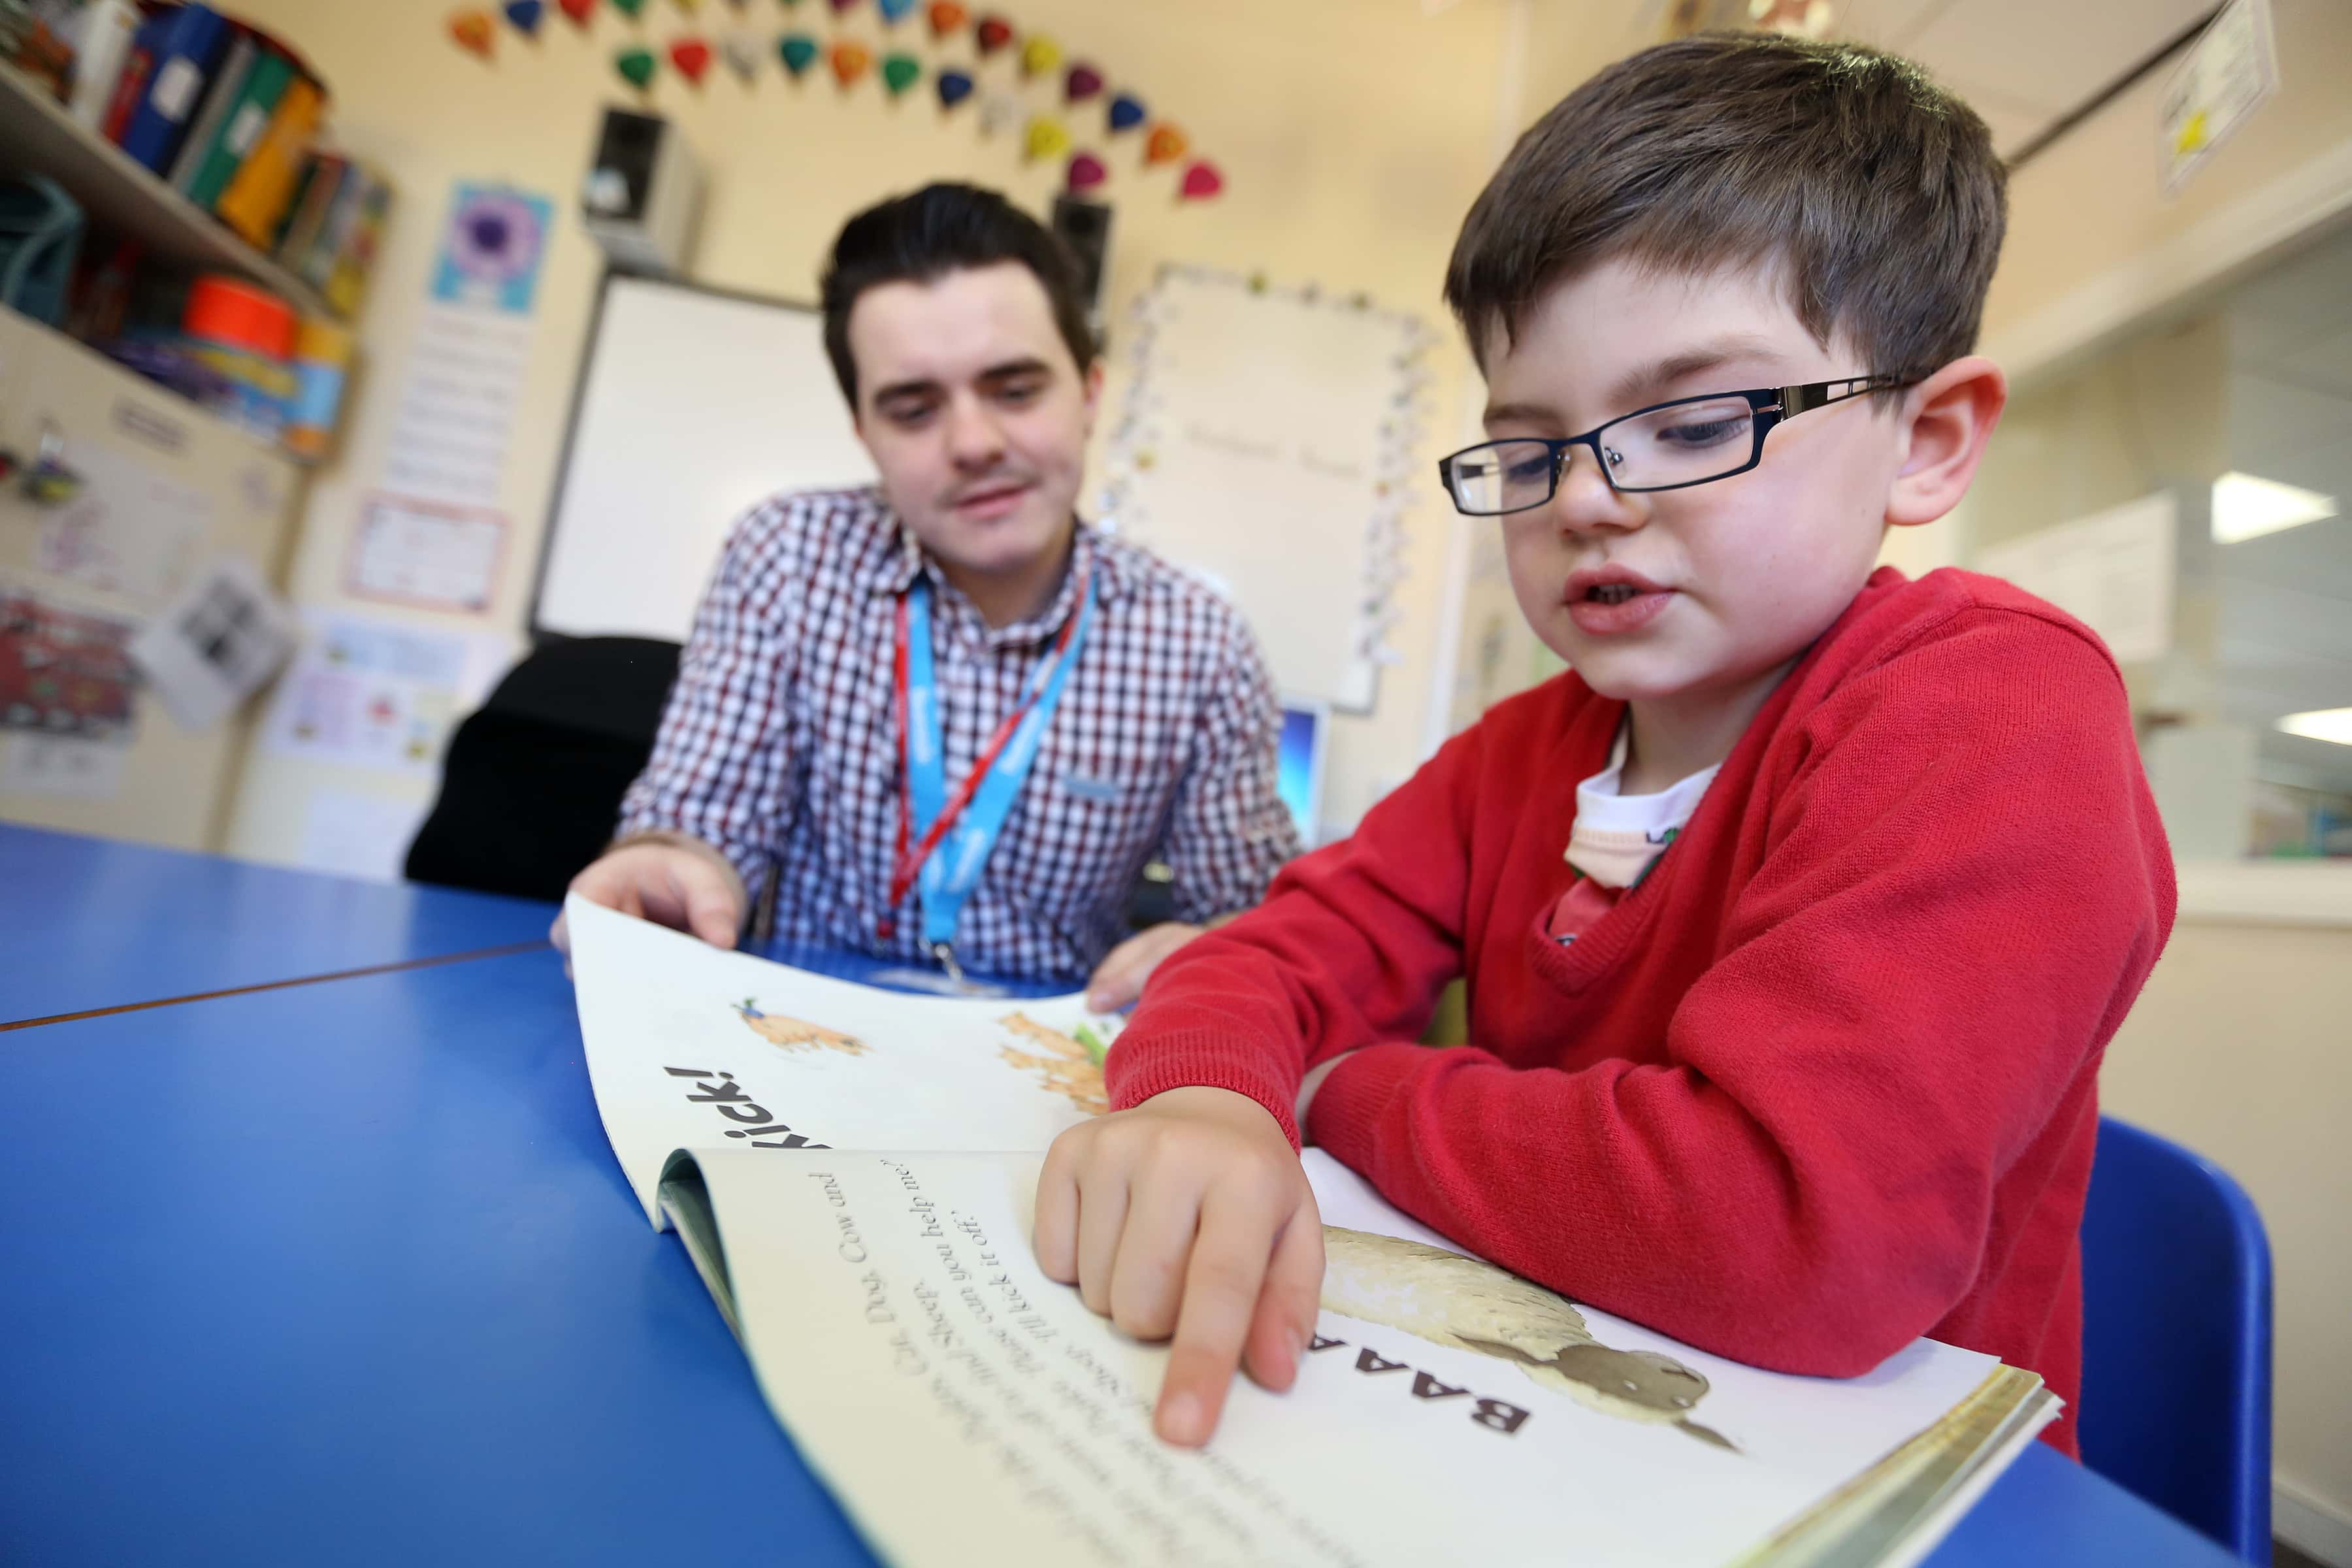 Beanstalk literacy charity aspire for greater results in North East